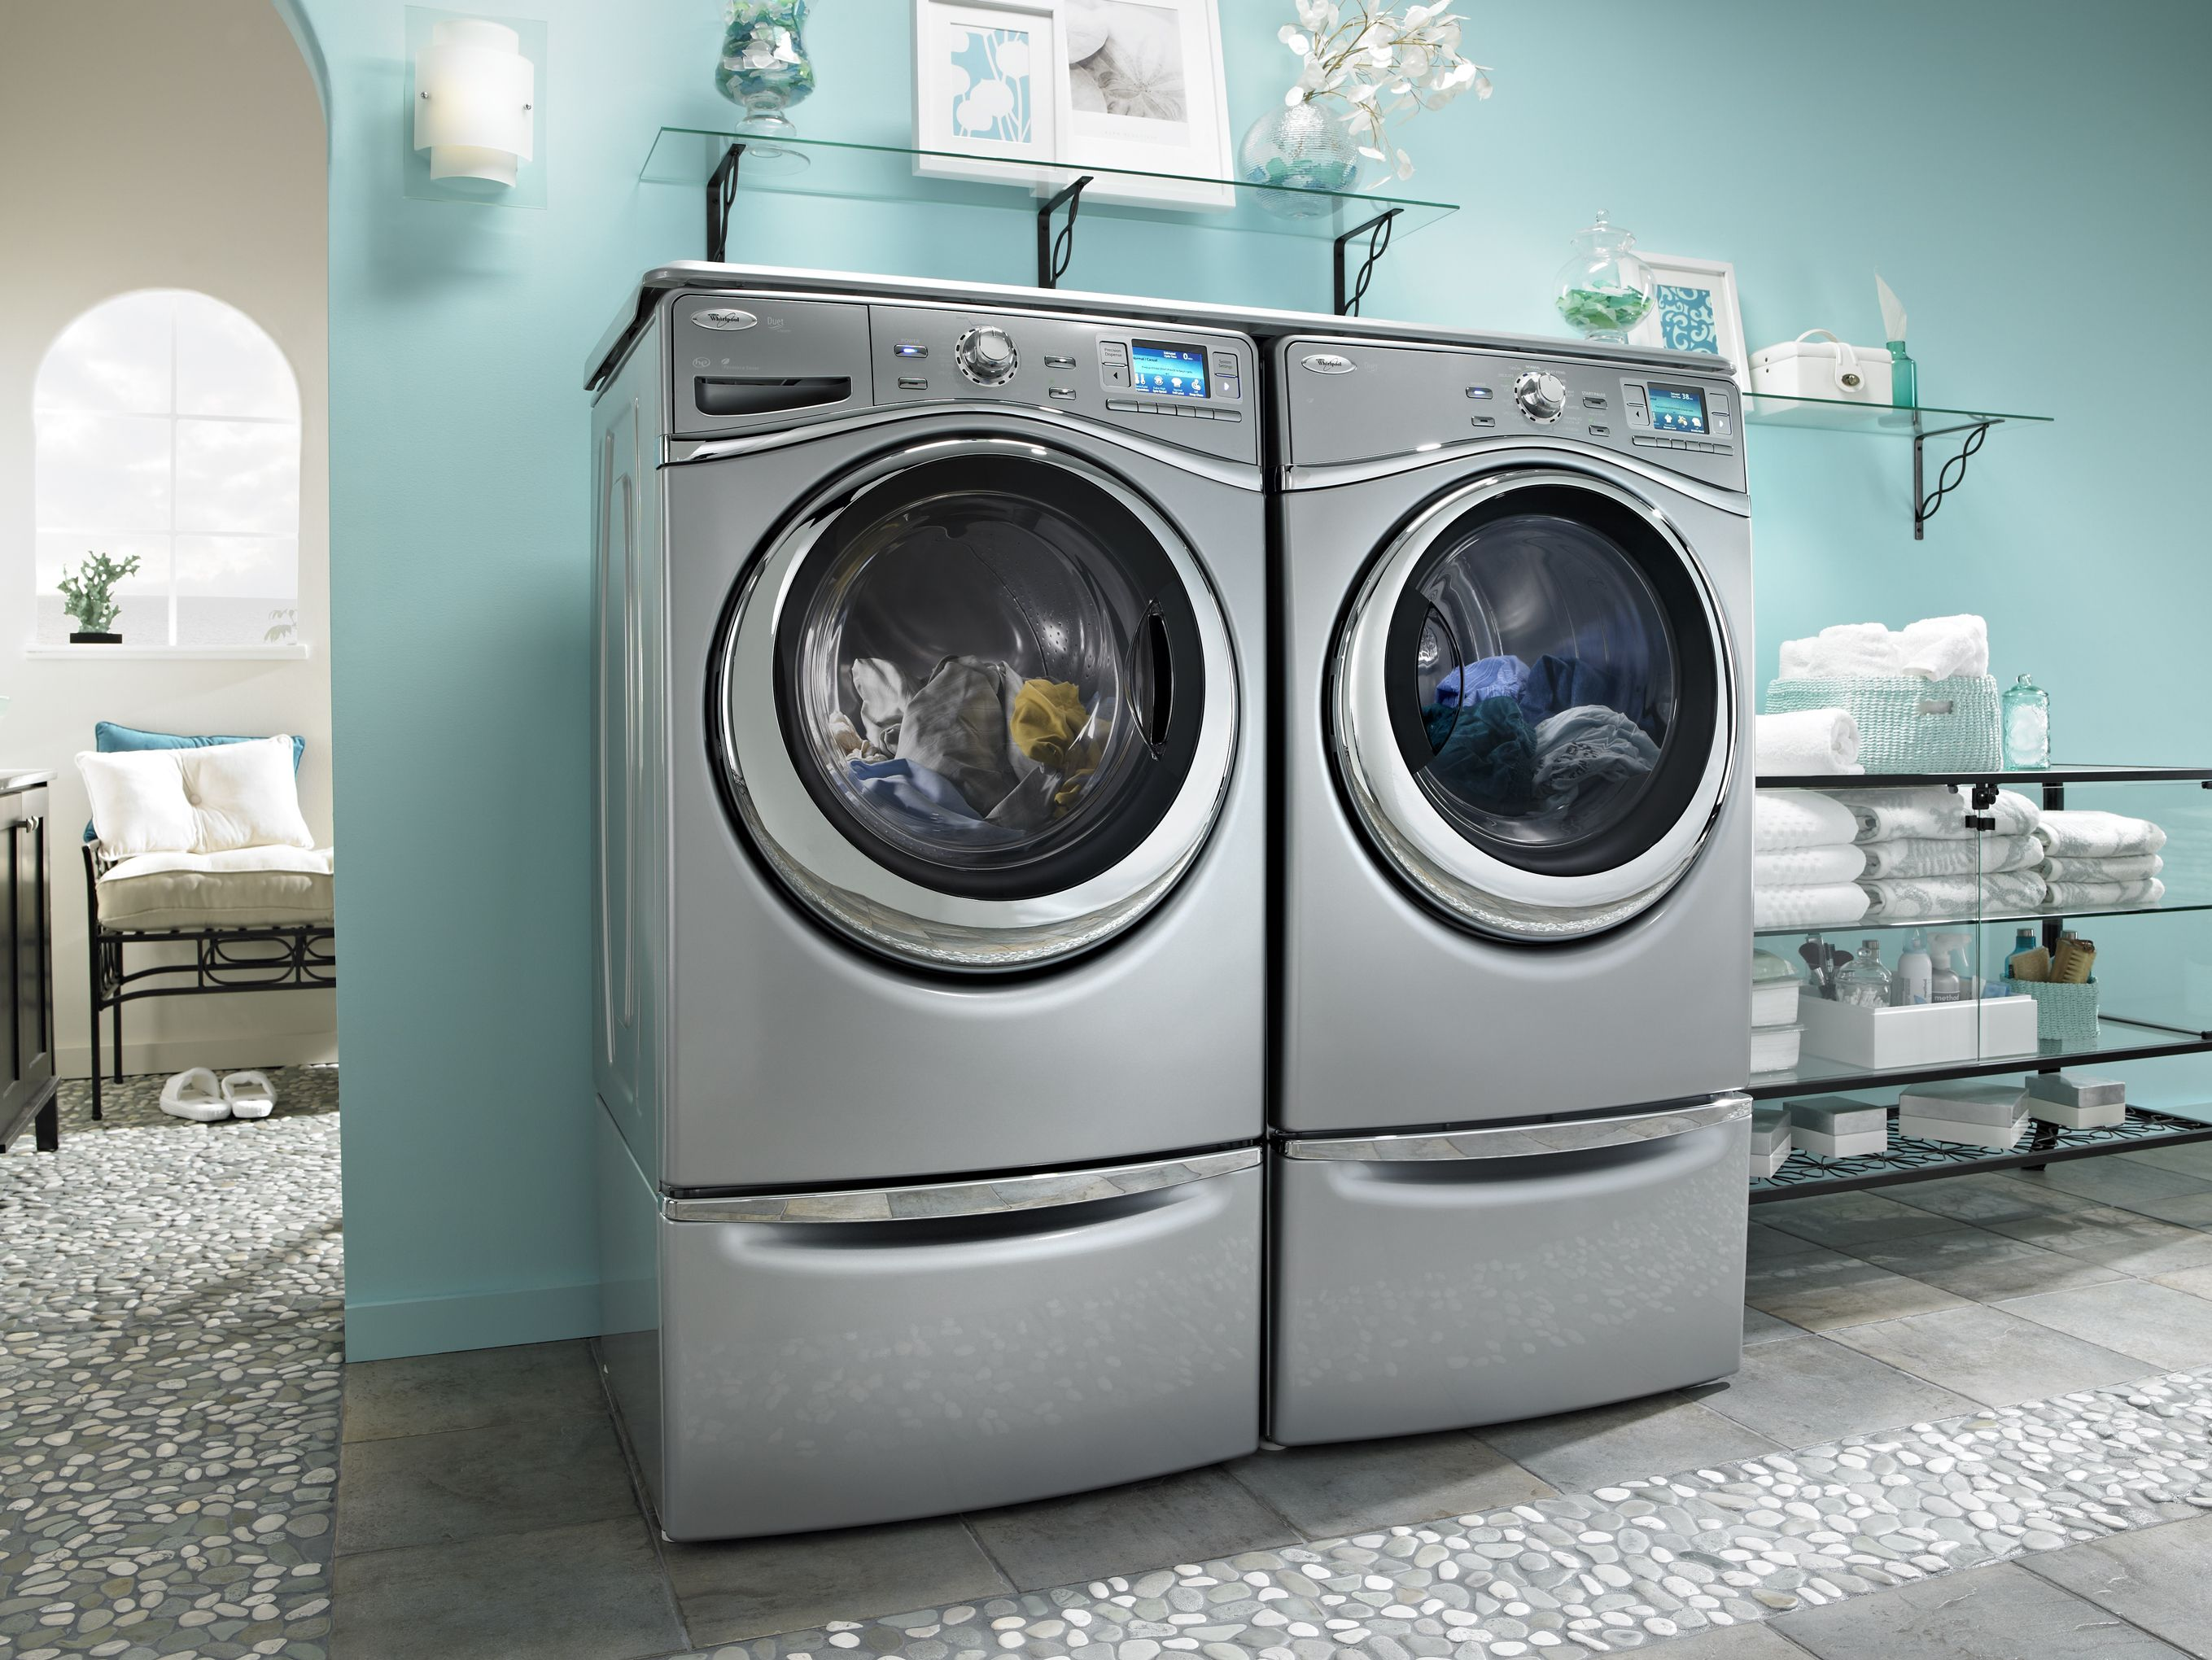 laundry surround any are ask and to build tutorial a below step in how with as duet whirlpool pedestal by please on comments the questions pin promised washer instructions dryer